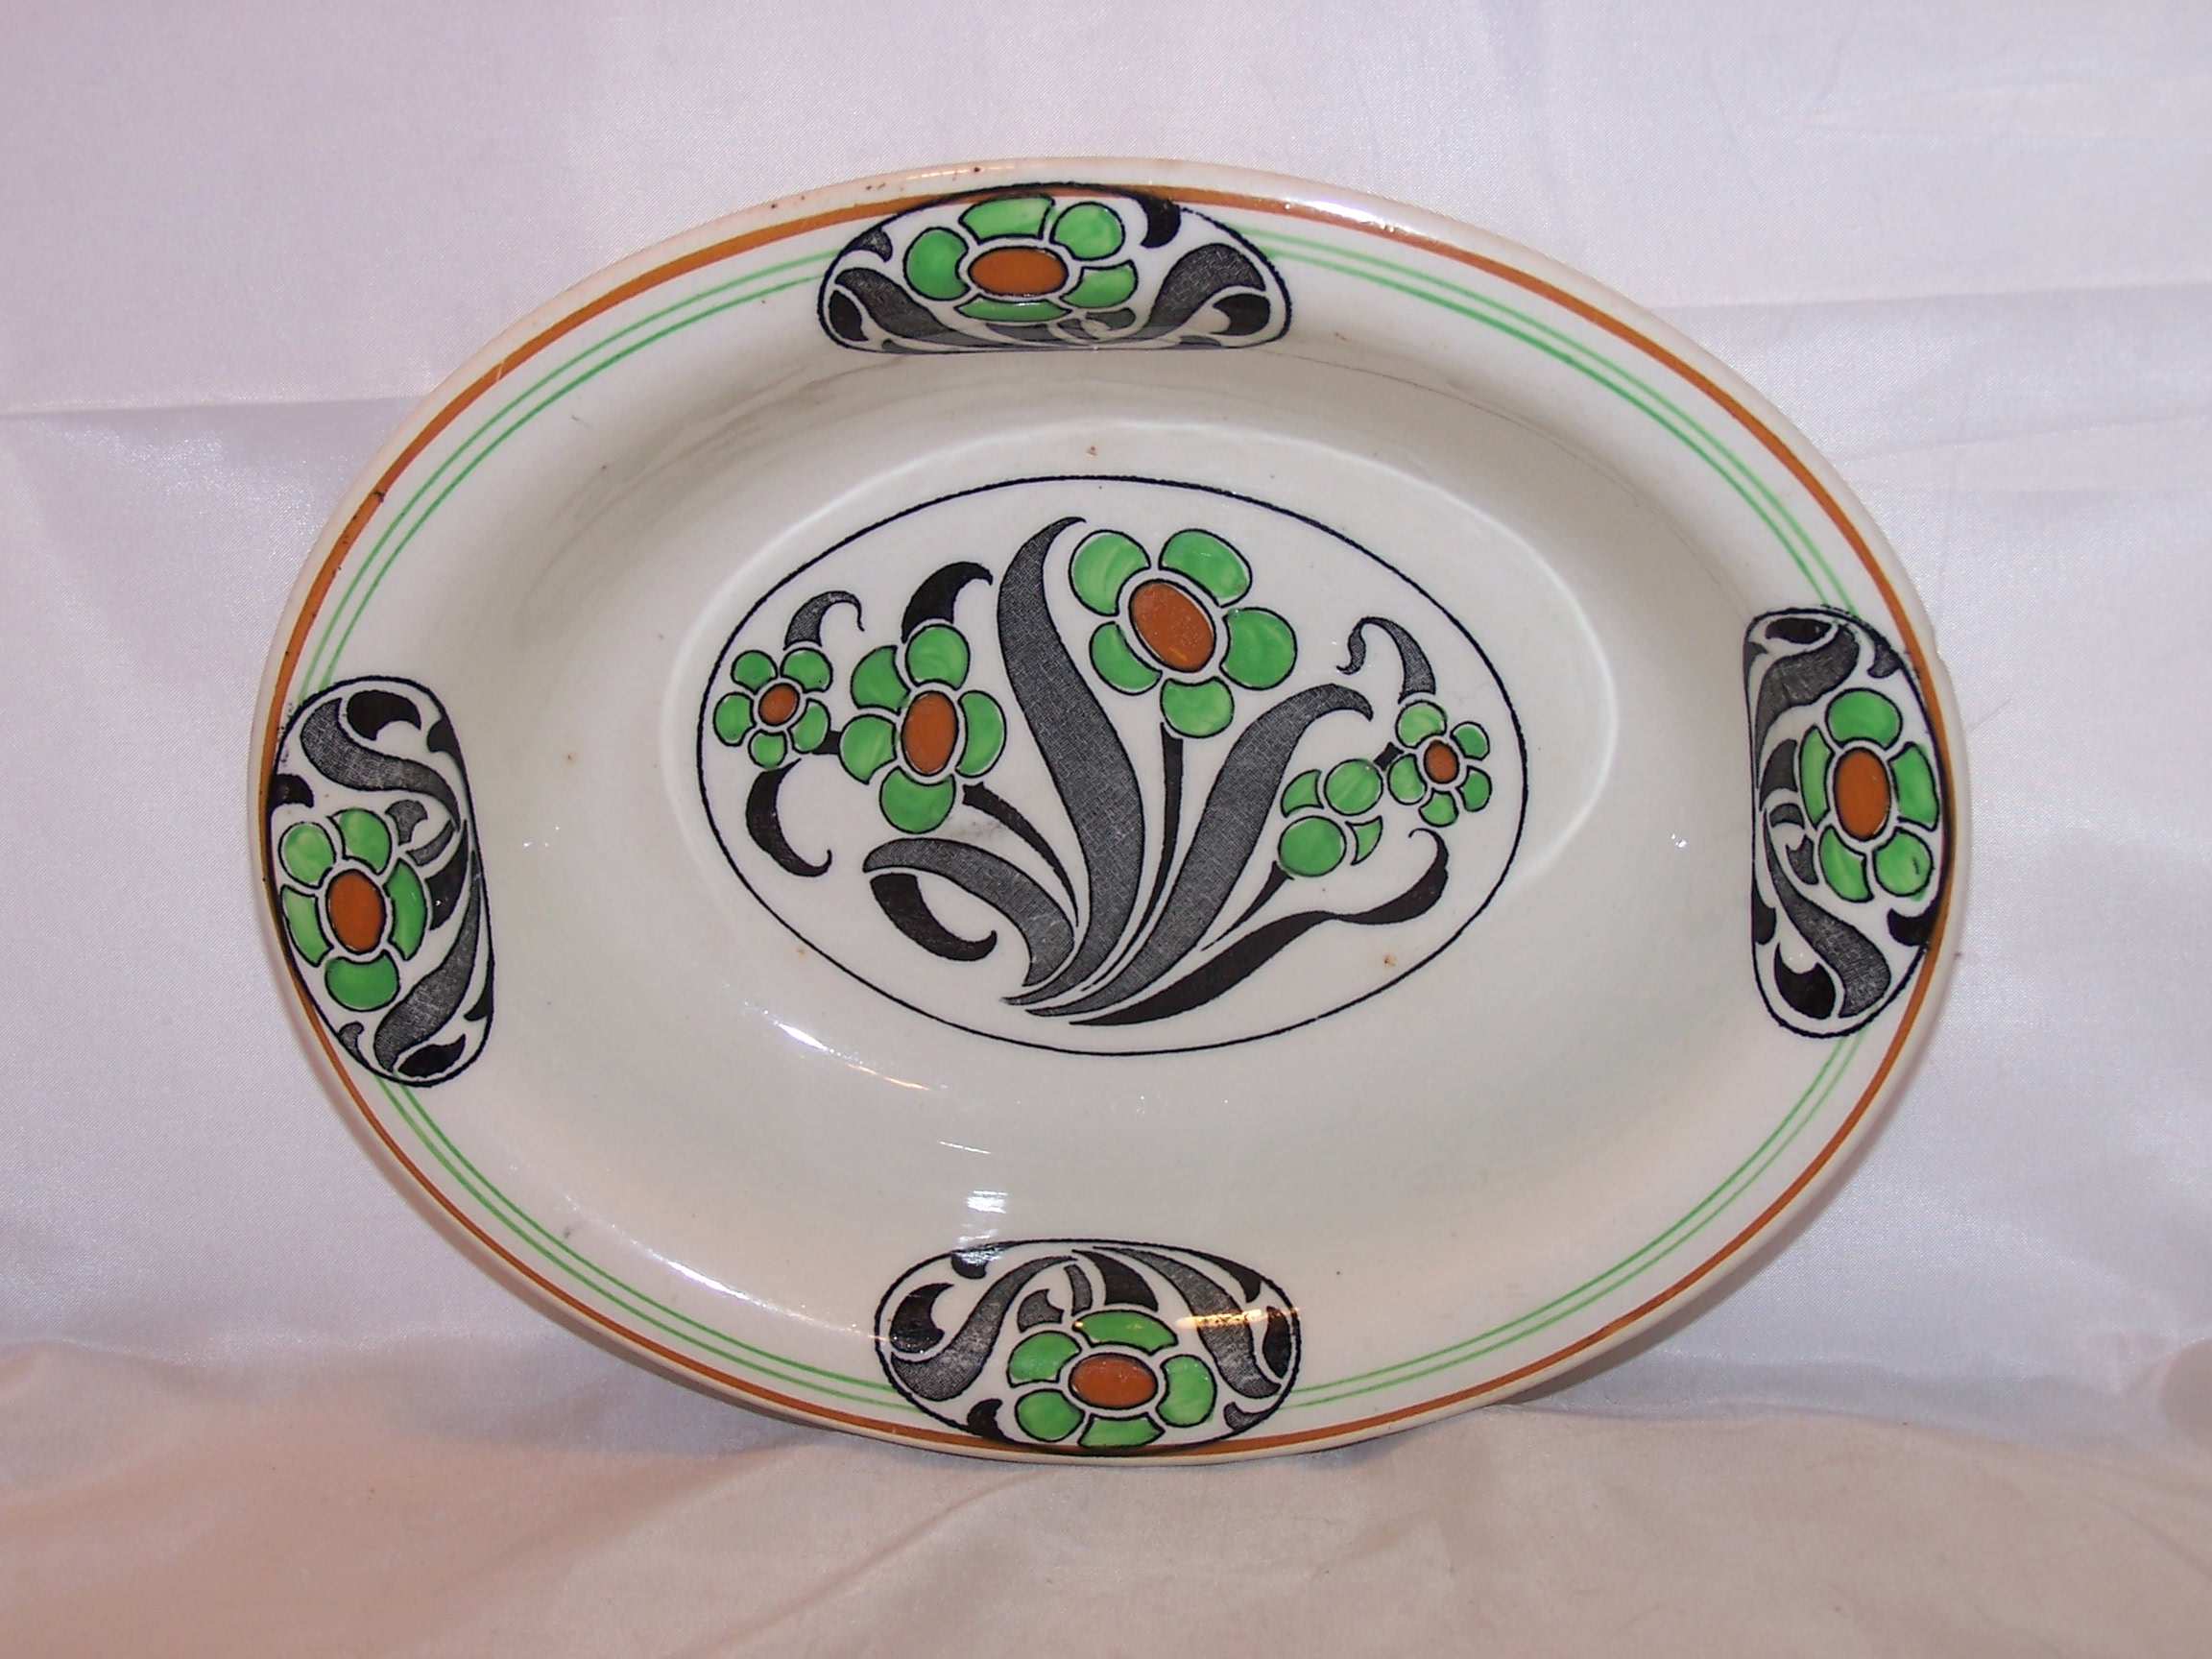 Regent Royal Venton Ware Serving Bowl, John Stevenson and Sons